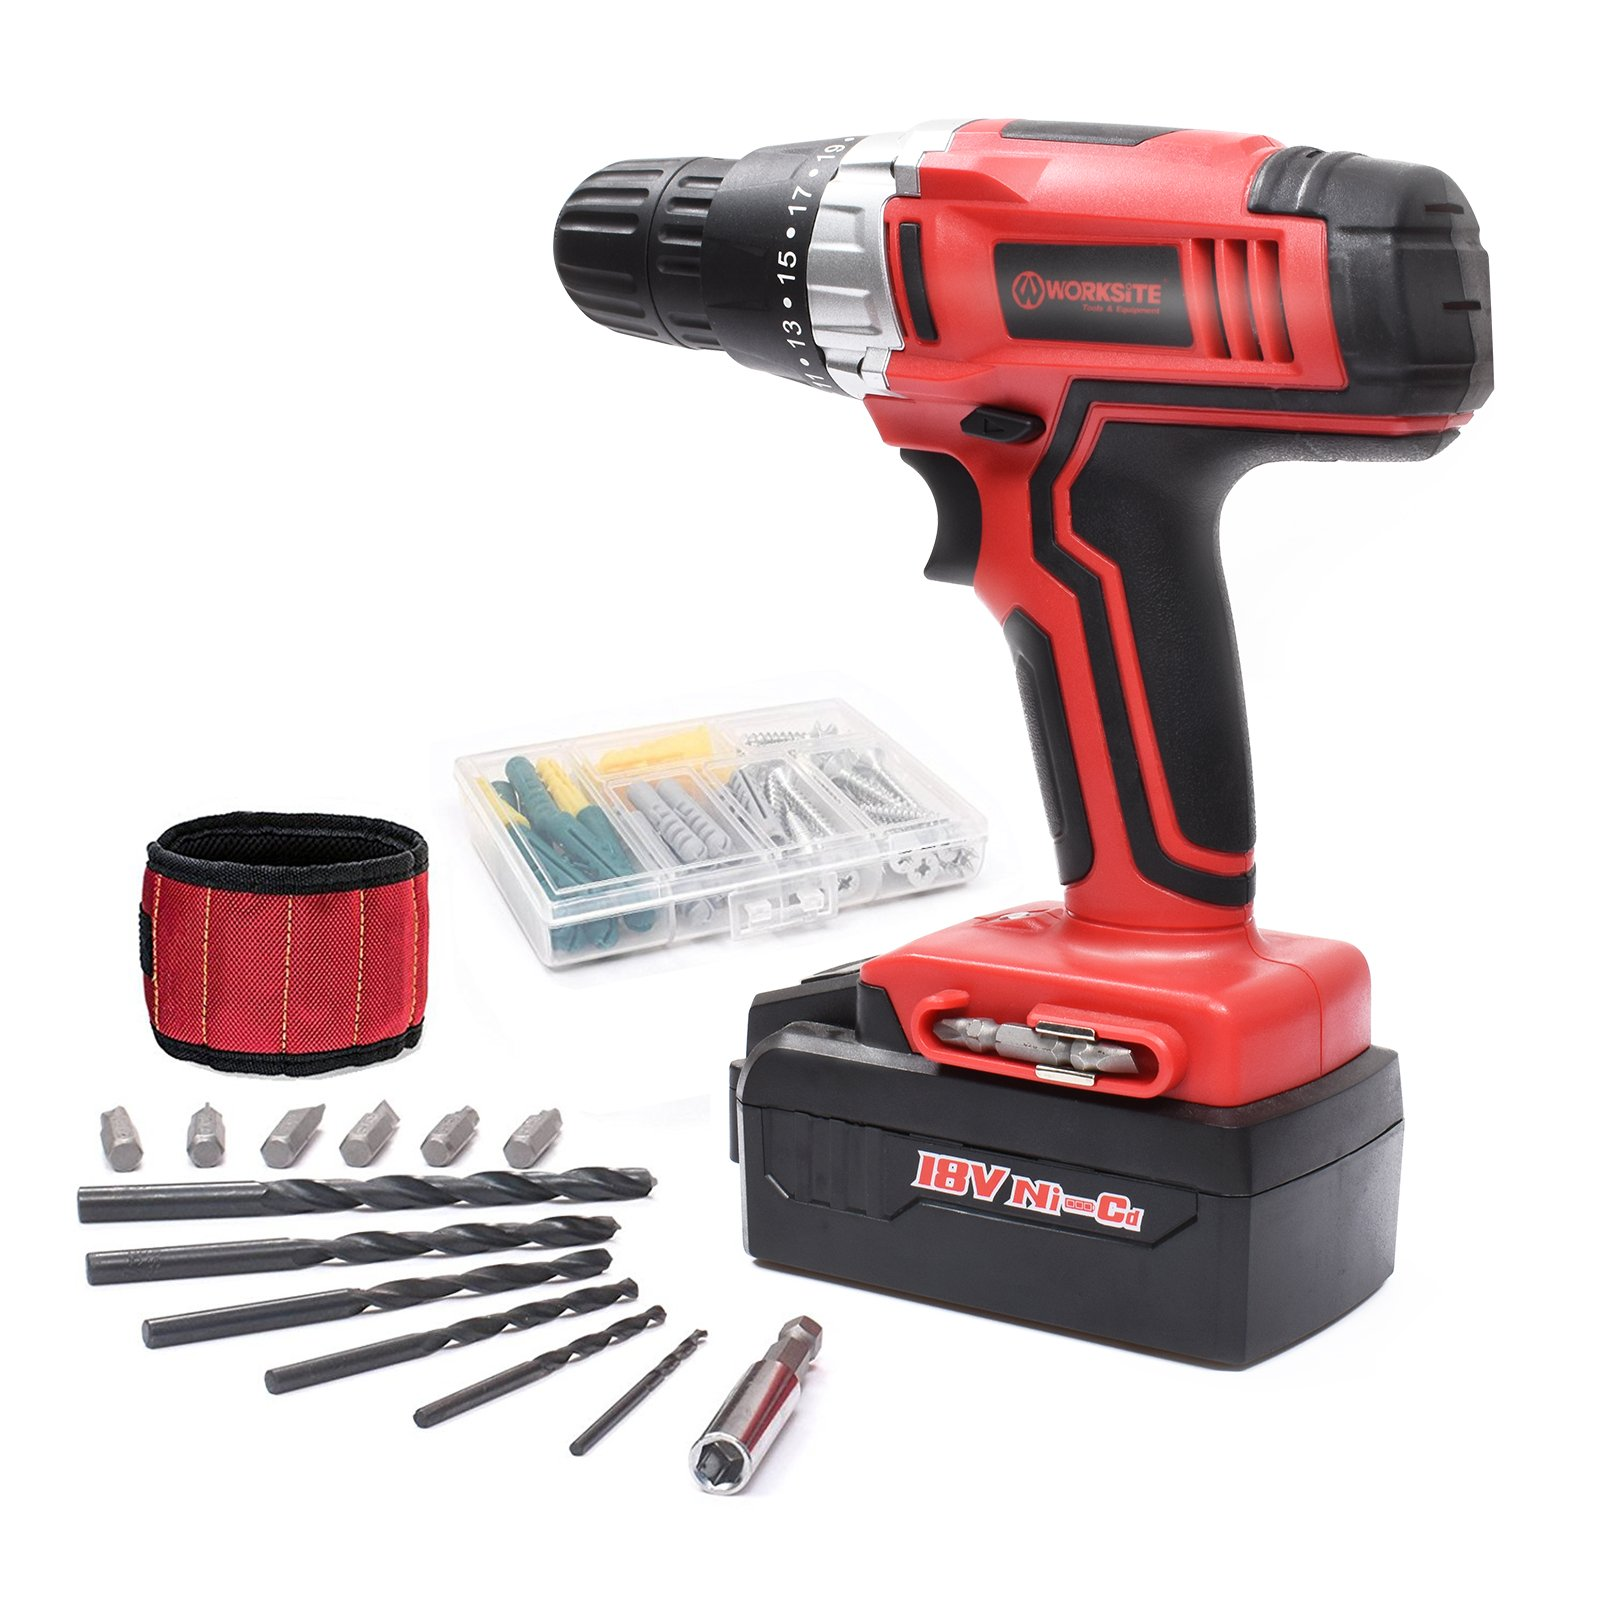 Cordless Drill ScrewDriver WORKSITE CD312-18N 18-Volt 1200mA Ni-cd Battery Powerful Electric Drill Driver Built-in Light with 13 Pcs Accessories Bits Set and Magnet Wristband